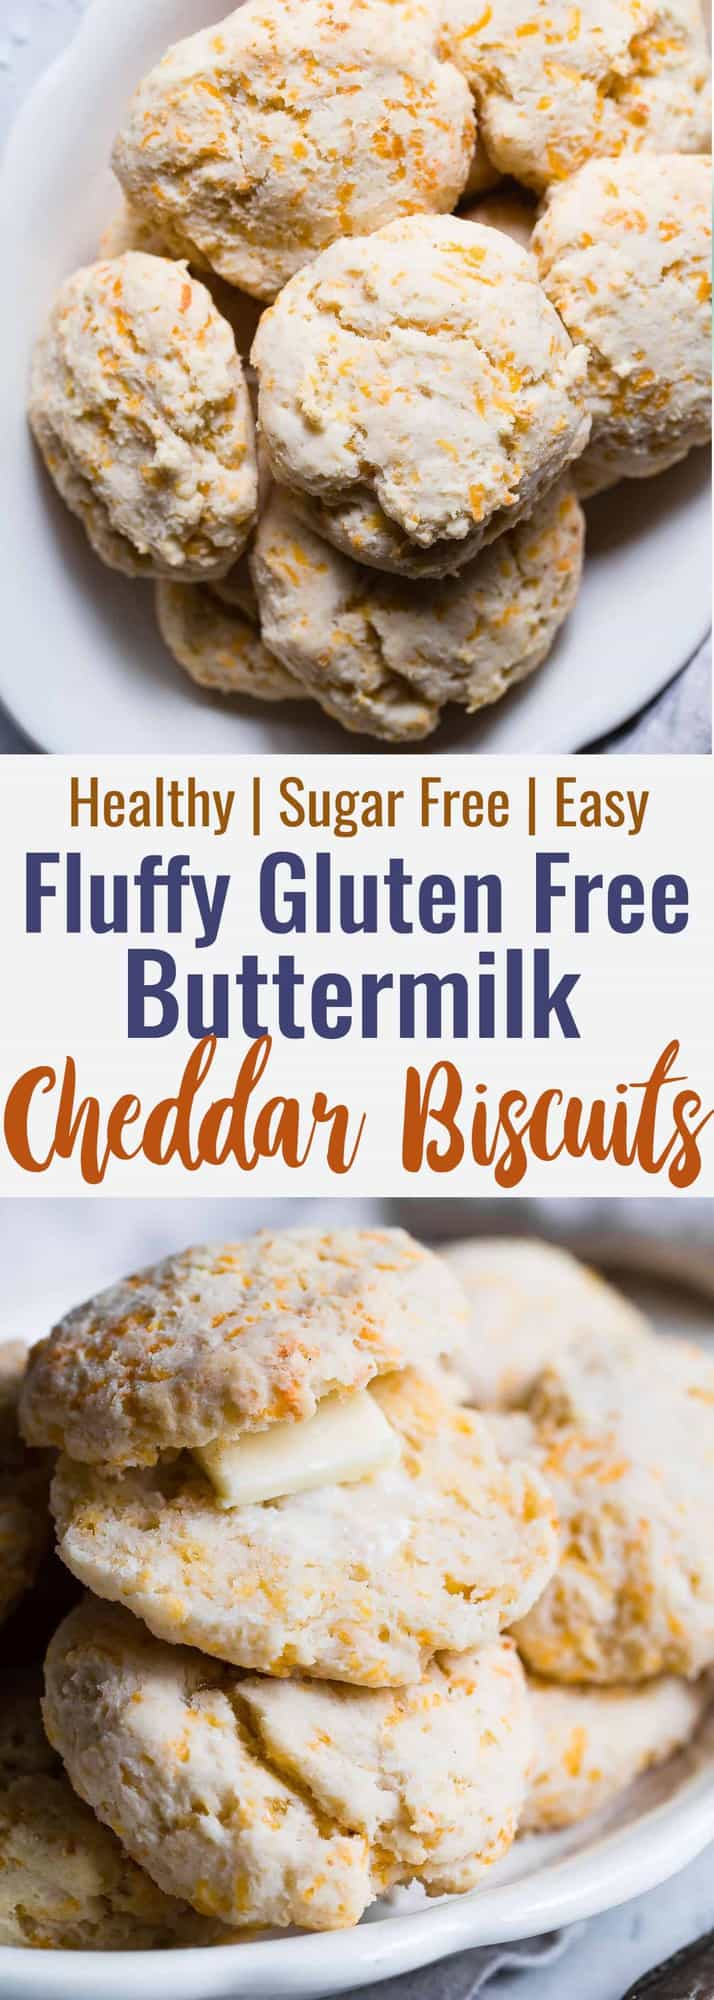 Gluten Free Buttermilk Cheddar Biscuits -These biscuitsare SO flaky, soft and buttery that you won't believe how easy they are! These are hands down the BEST gluten free biscuits! | #Foodfaithfitness | #Glutenfree #Healthy #Biscuits #Sugarfree